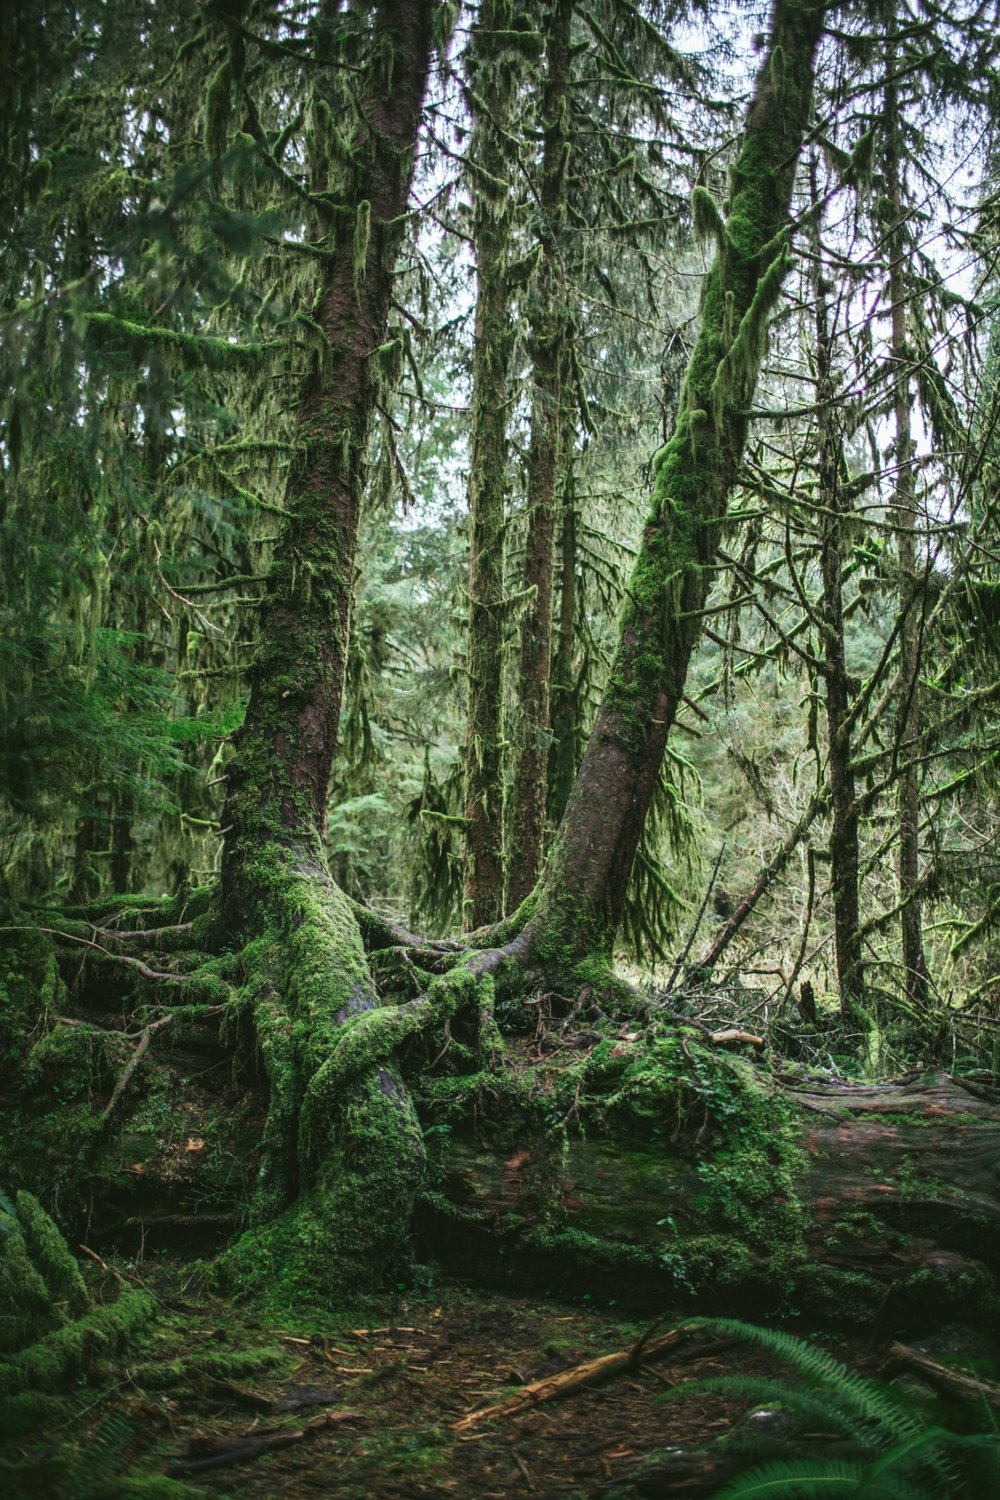 Olympic-National-Park-by-Eva-Kosmas-Flores-38-1-768x1152@2x.jpg